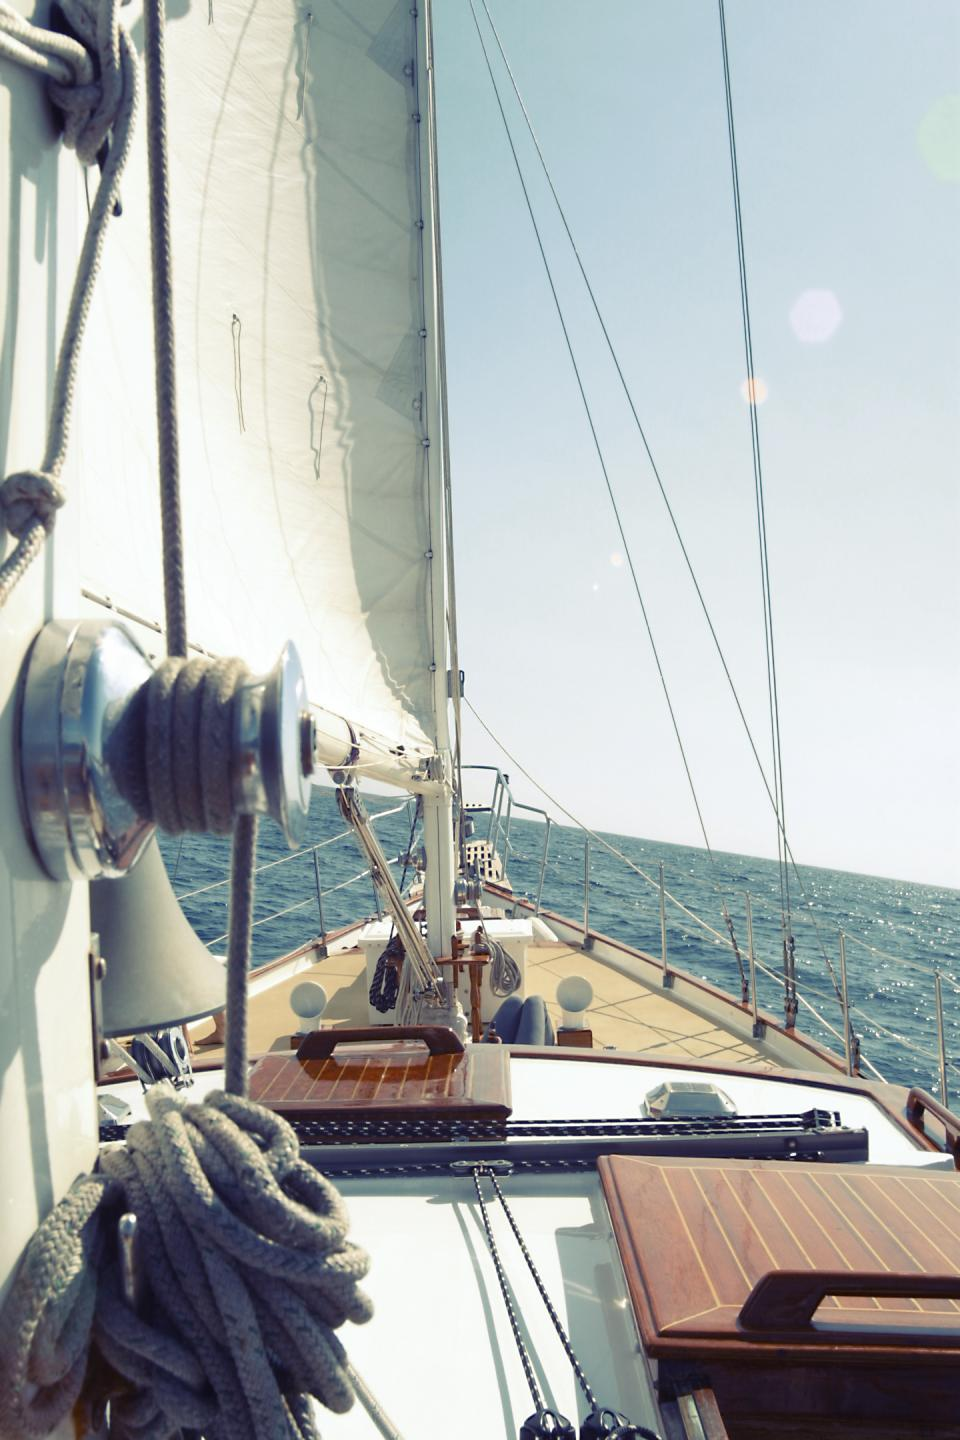 View from a Sailboat